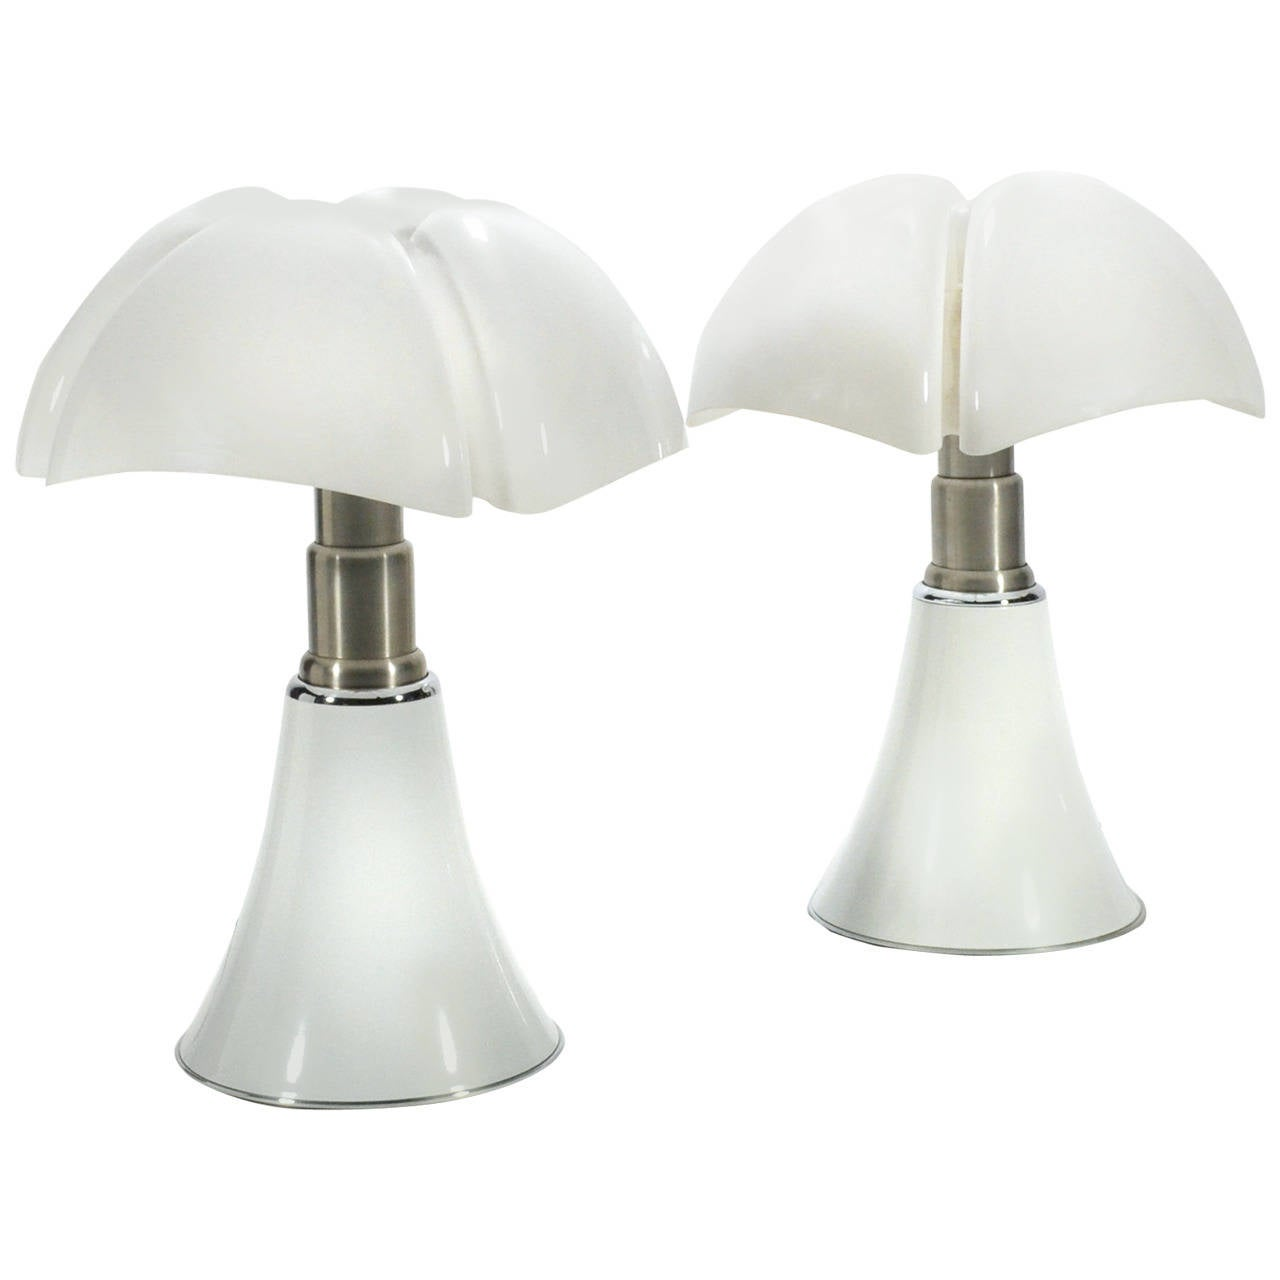 Pair of Gae Aulenti Pipistrello Table Lamps For Sale